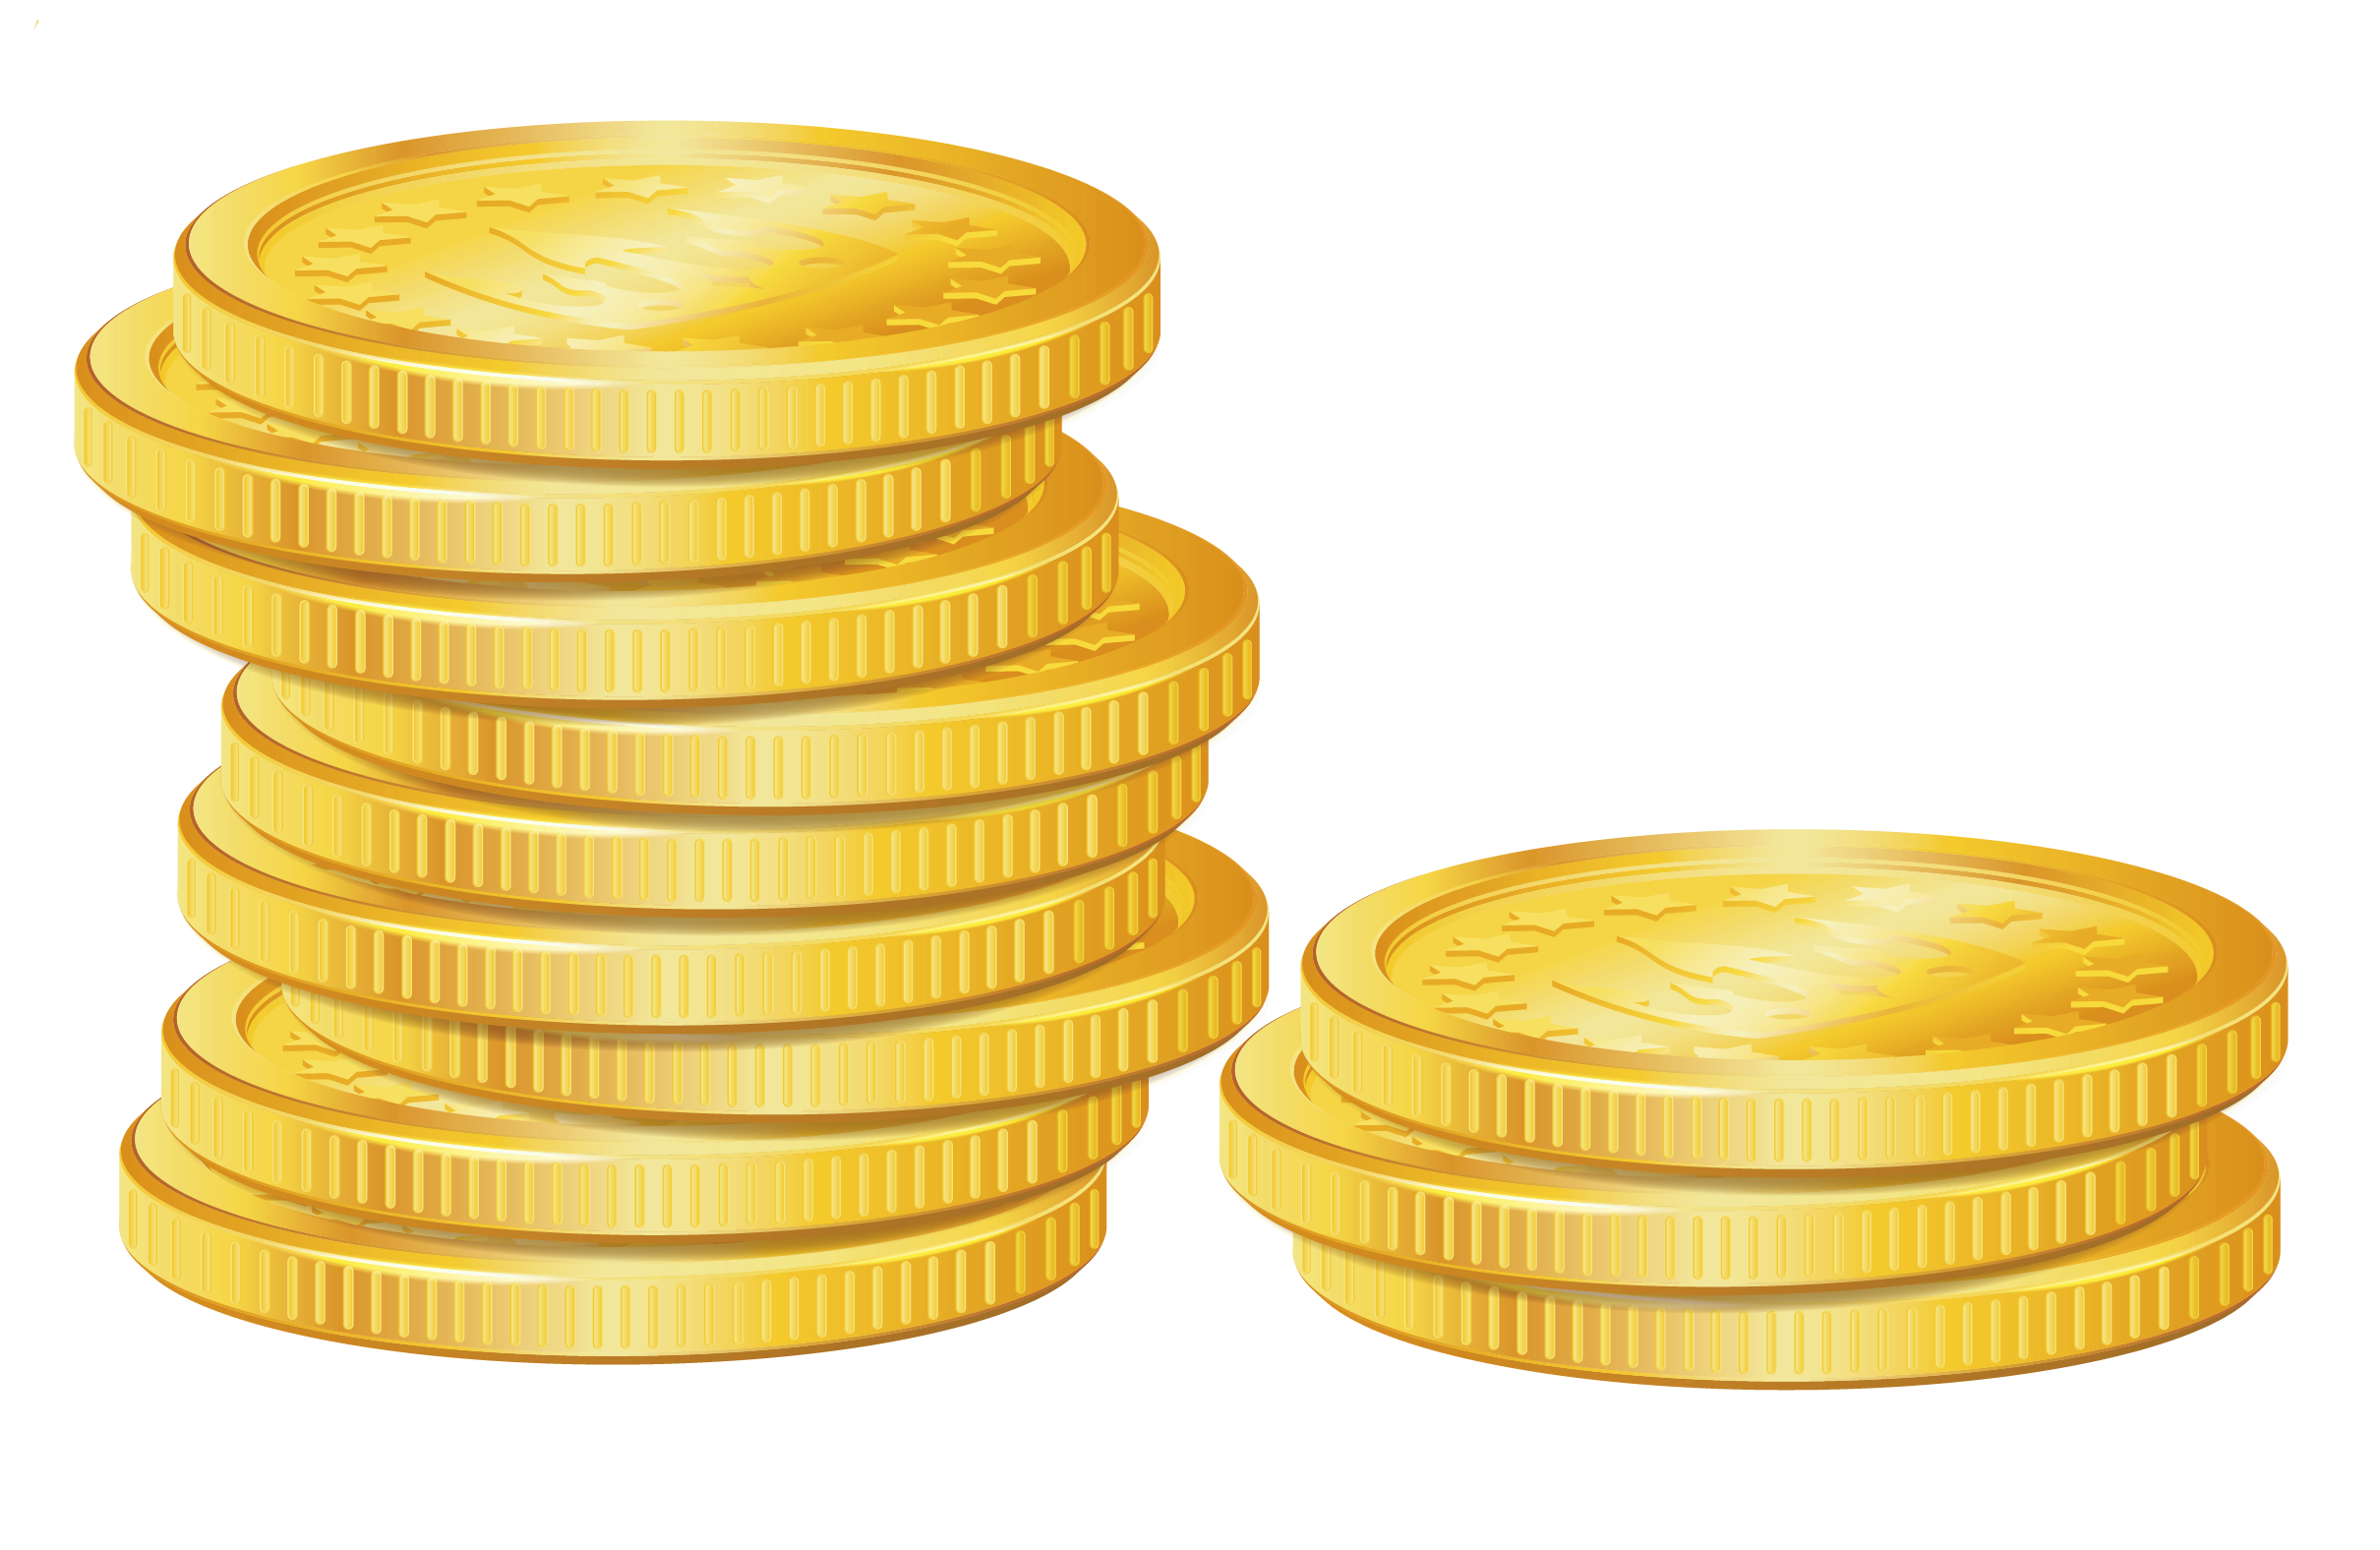 Pile of coins picture. Money cartoon png